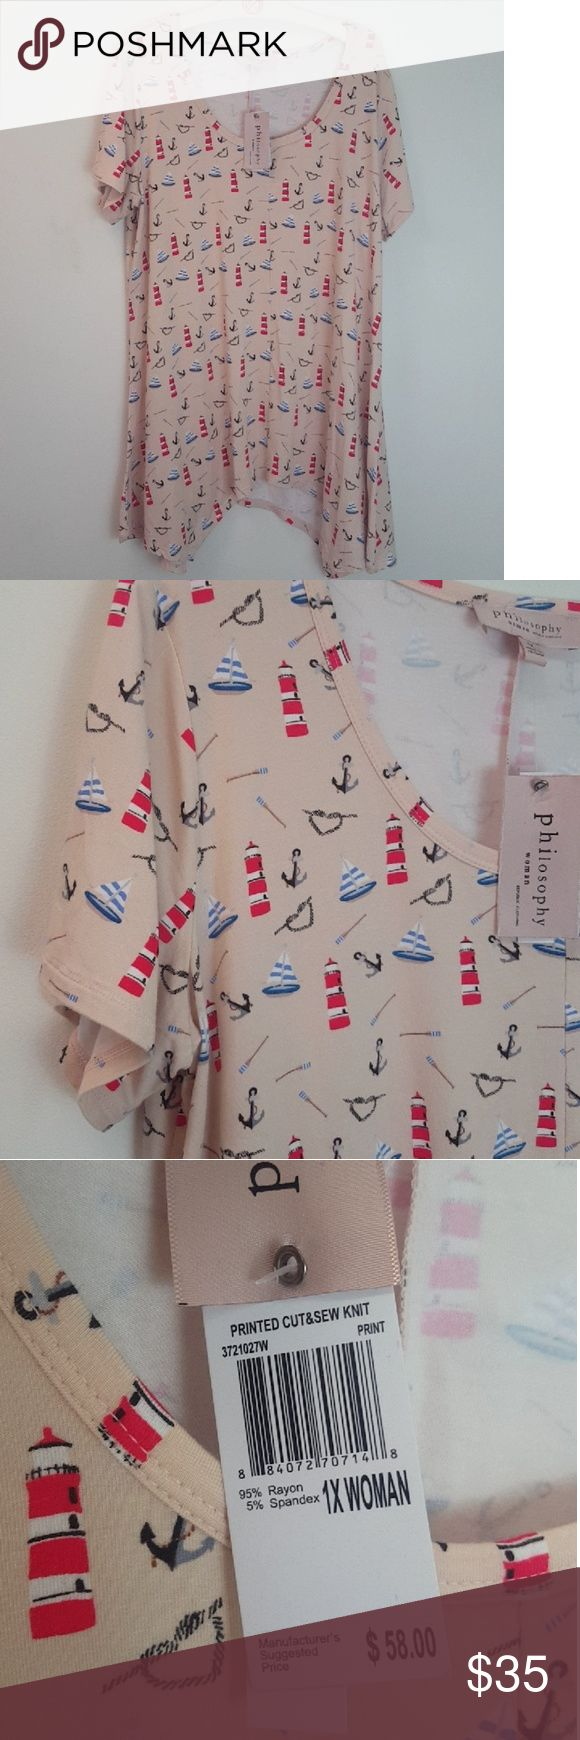 Philosophy Salmon Nautical Boat & Lighthouse Shirt Brand new from Philosophy republic clothing! Light salmon colored with all over nautical theme: anchors, oars, lighthouses, boats. Regular short sleeve with a curved draped bottom hem Size 1x! Super cute to pair with leggings! Philosophy Tops Tees - Short Sleeve